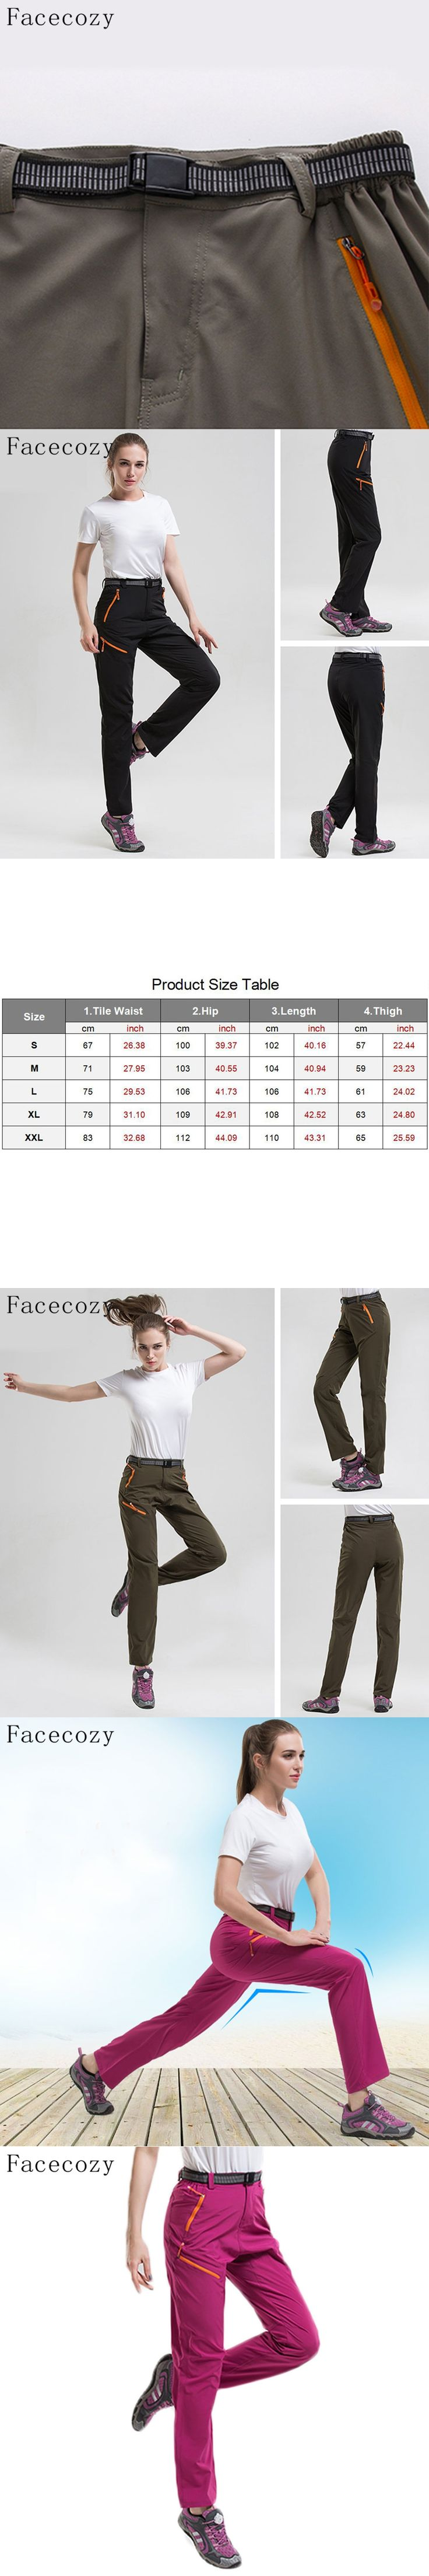 Facecozy Women Outdoor Hiking Quick-Dry Pants Thin Breathable Slim Trousers Summer &Spring Climbing Fishing Outdoor Sports Pants